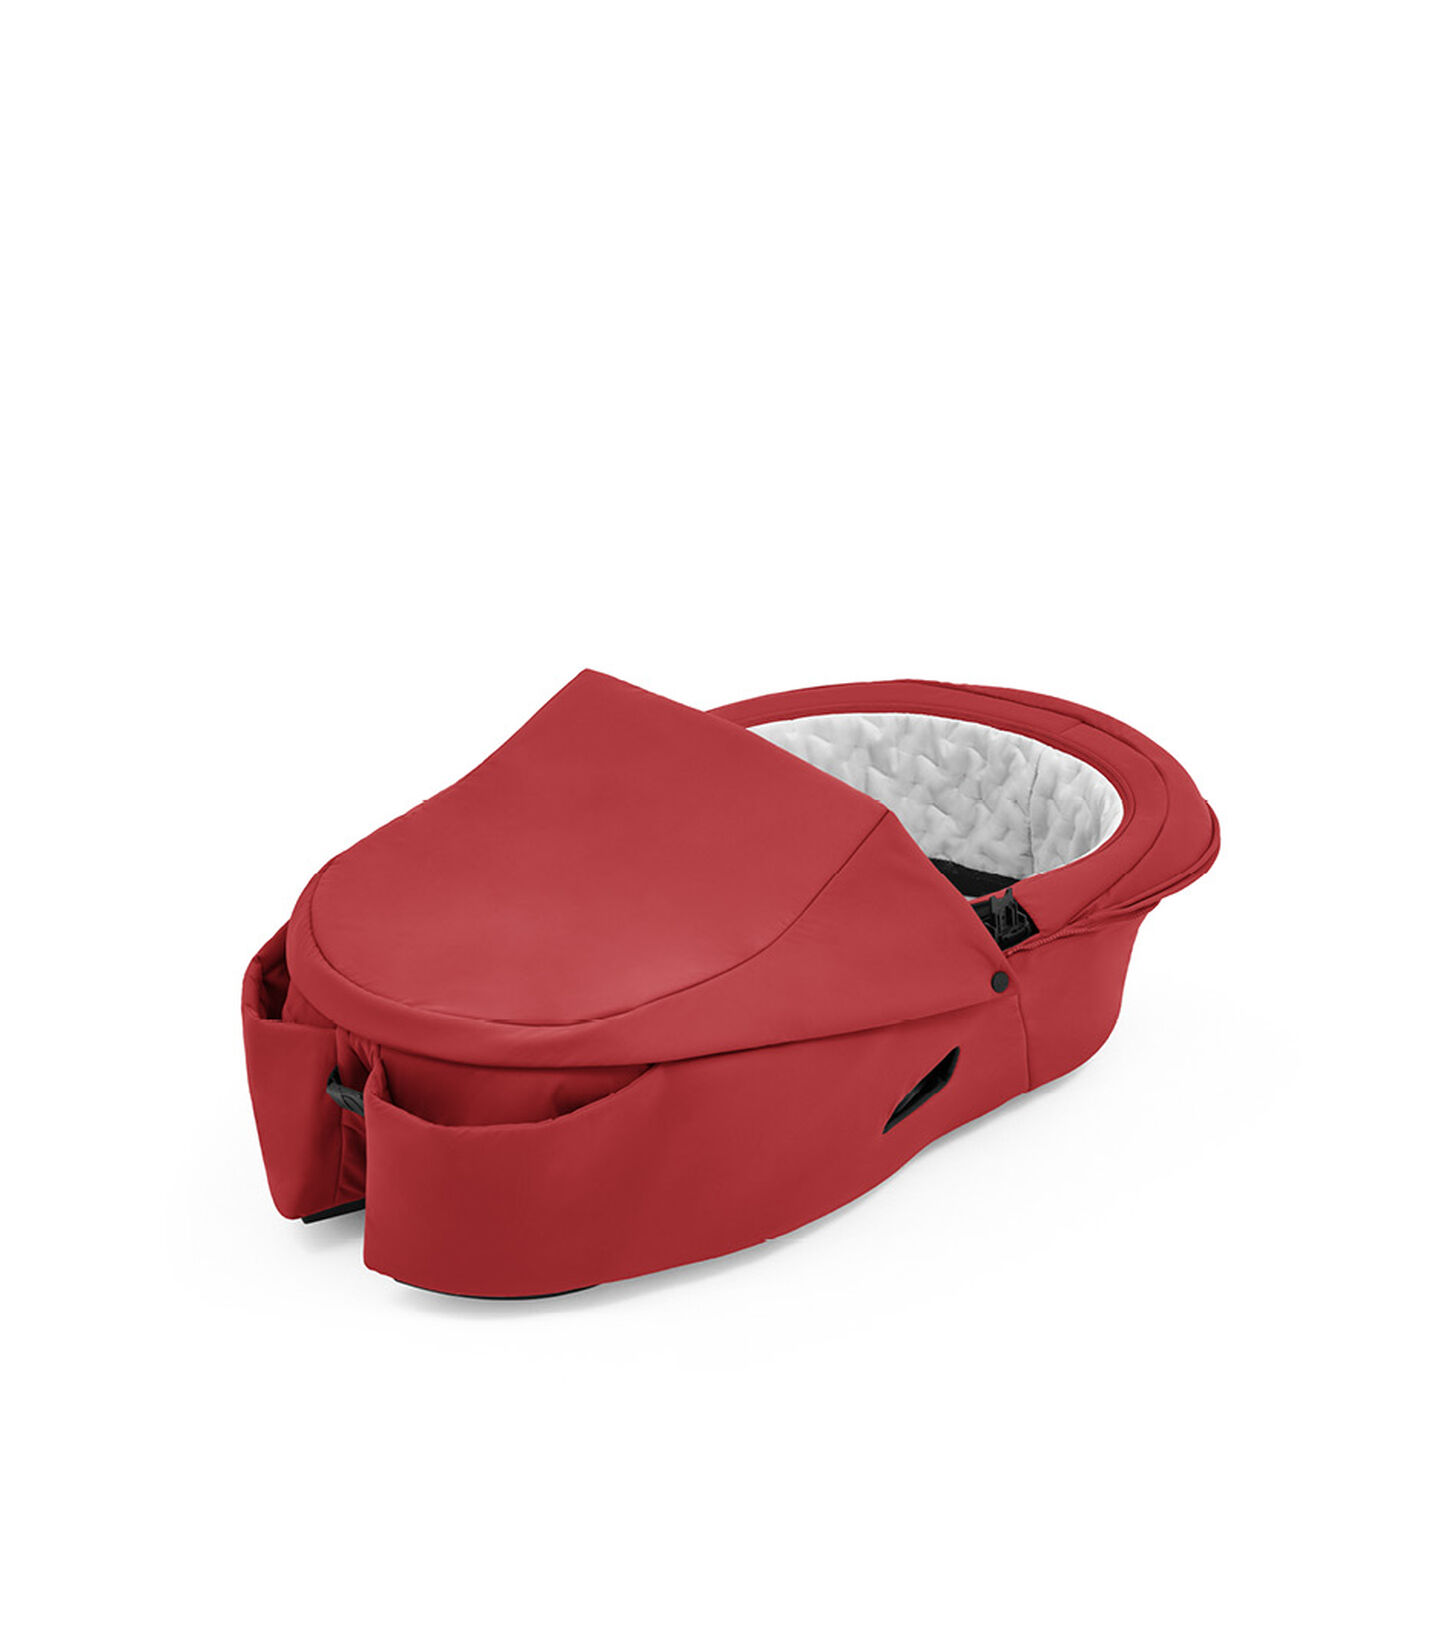 Stokke® Xplory® X Babyschale Ruby Red, Ruby Red, mainview view 1